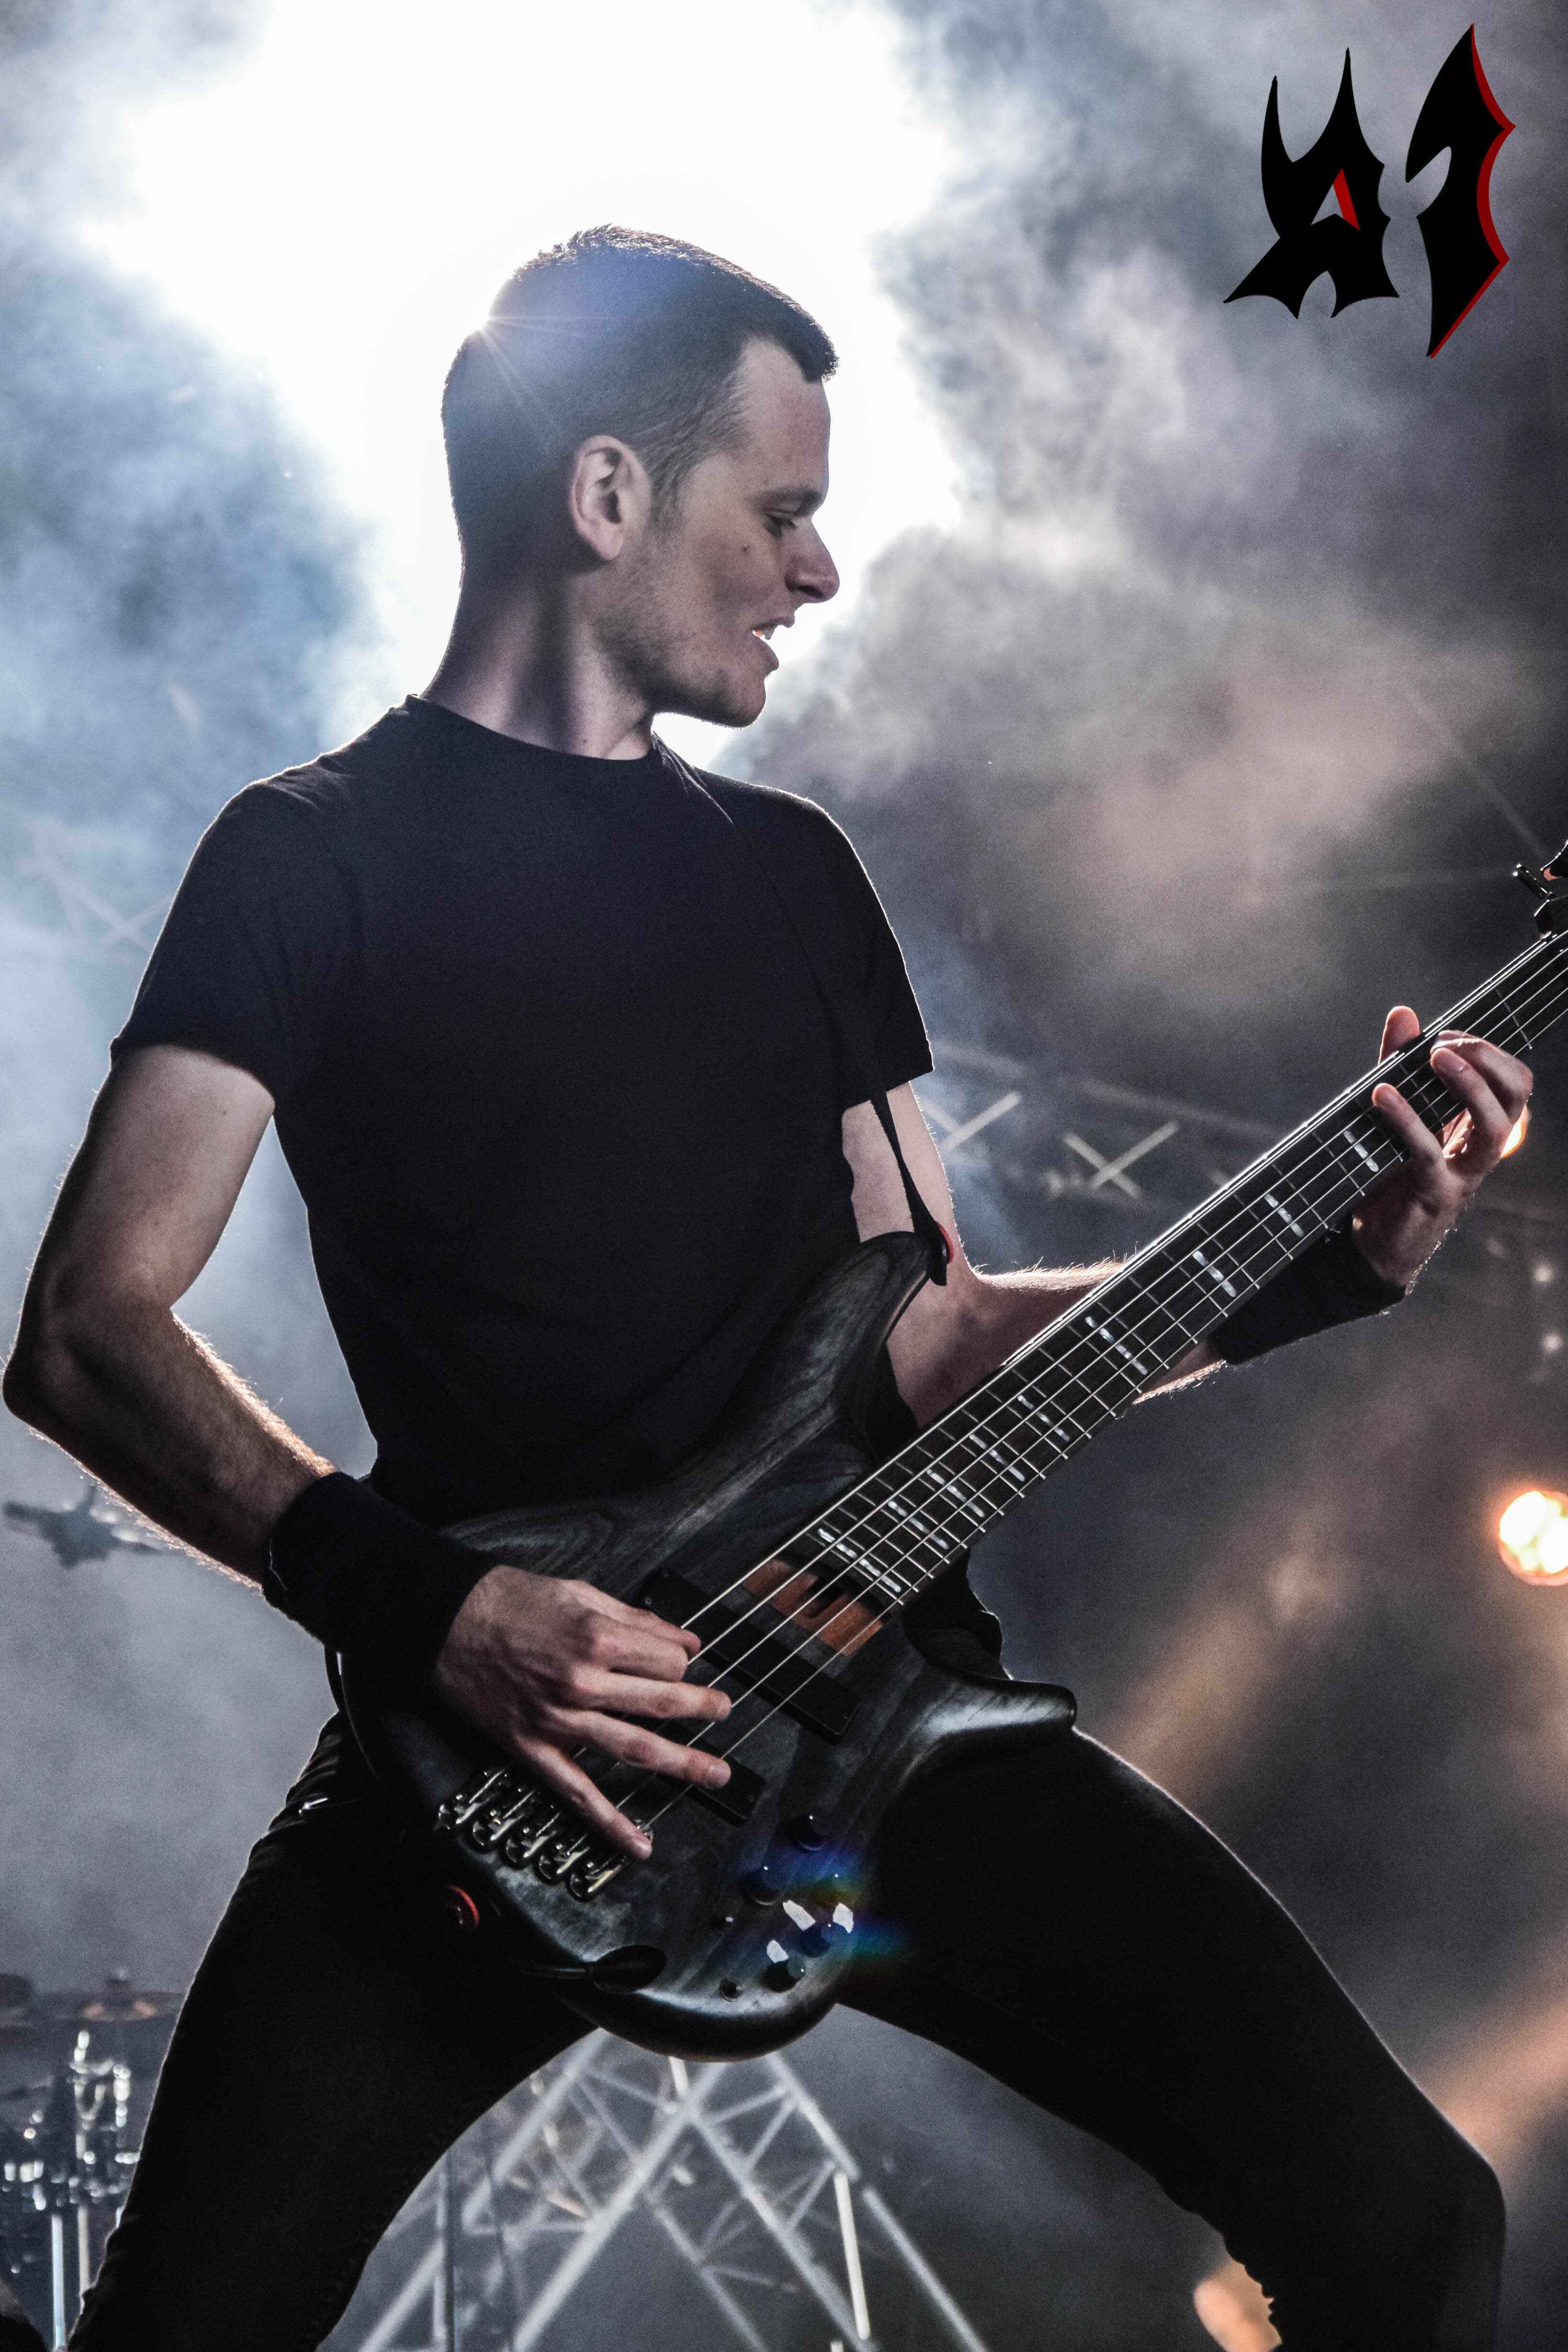 Hellfest - Day 1 - The Walking Dead Orchestra - 1